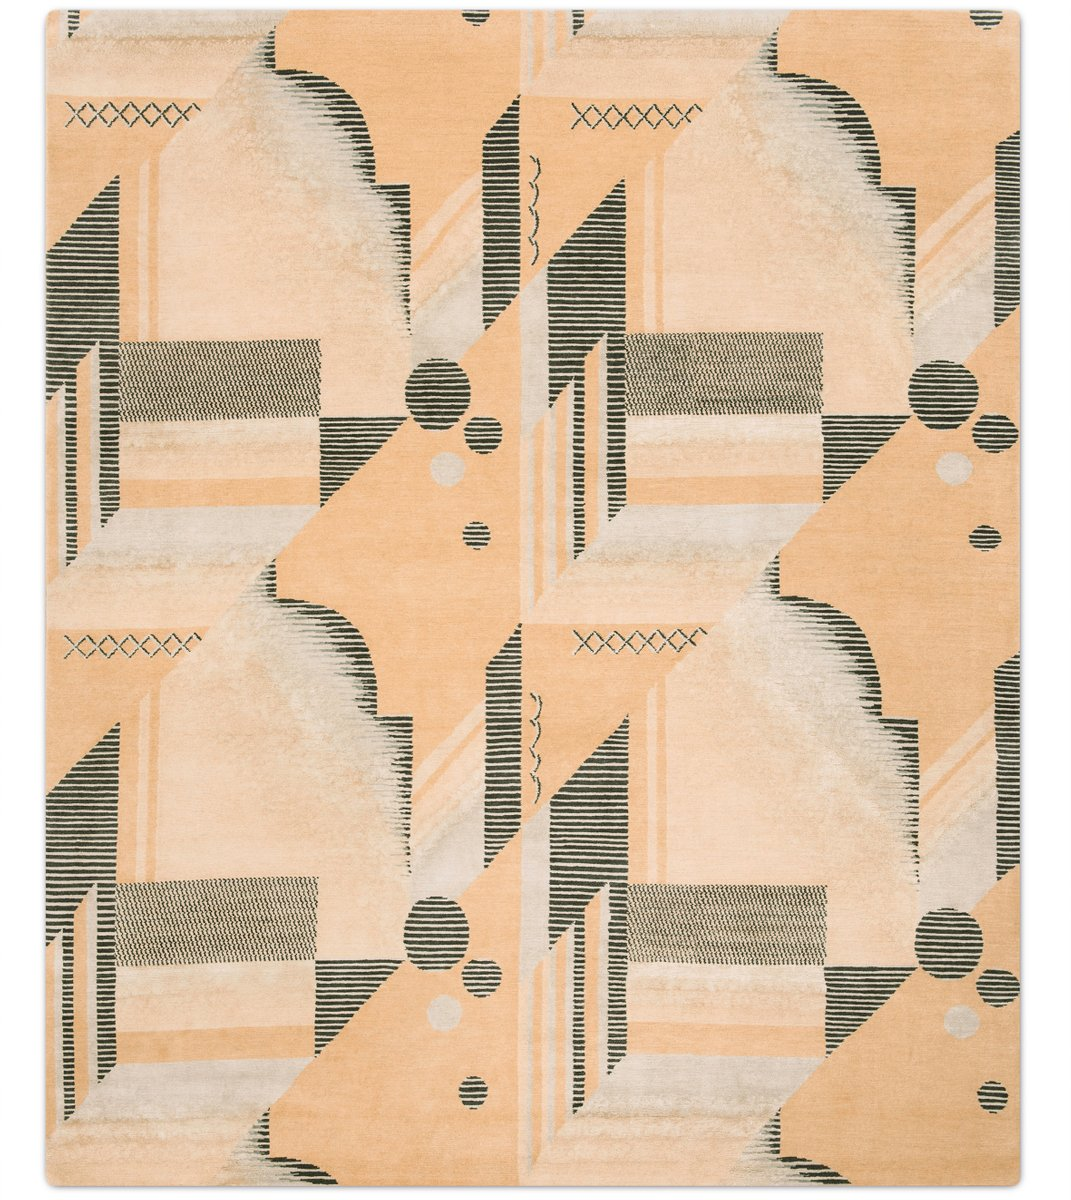 Art Deco Rug in Melon from Knots Rugs for sale at Pamono